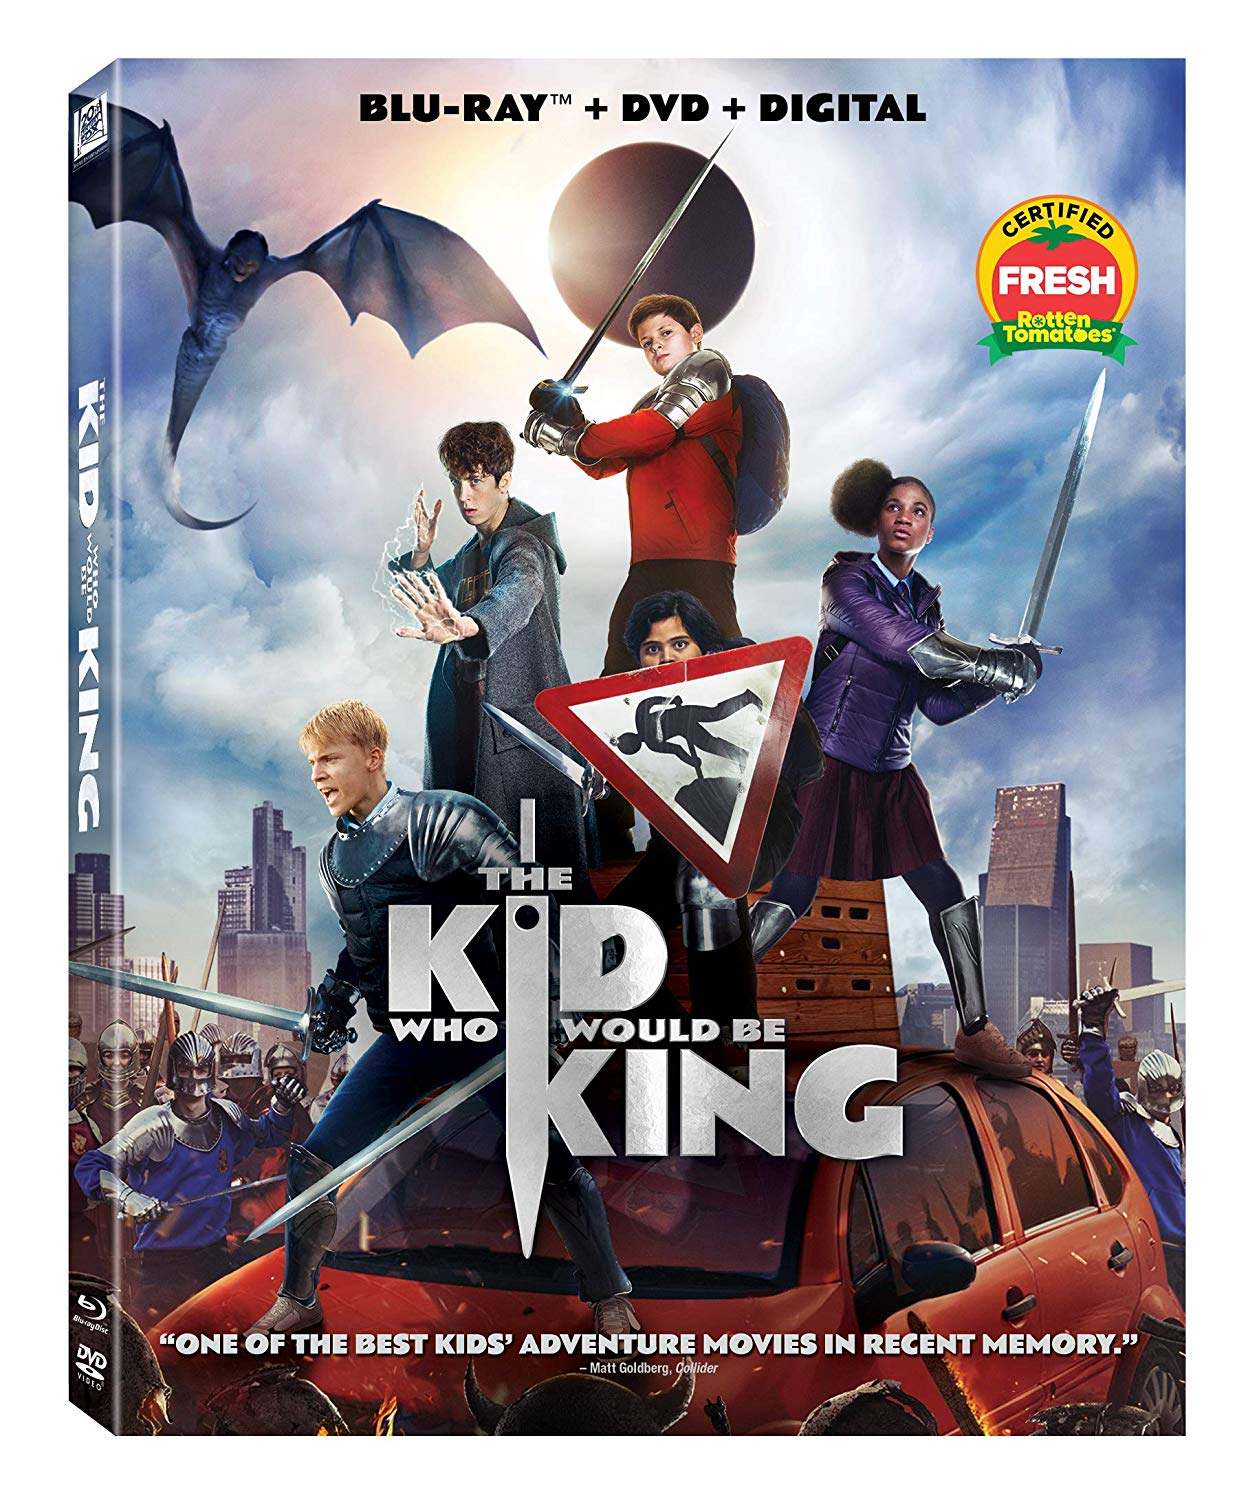 The Kid Who Would Be King Movie The Kid Who Would Be King Monster Music Movies